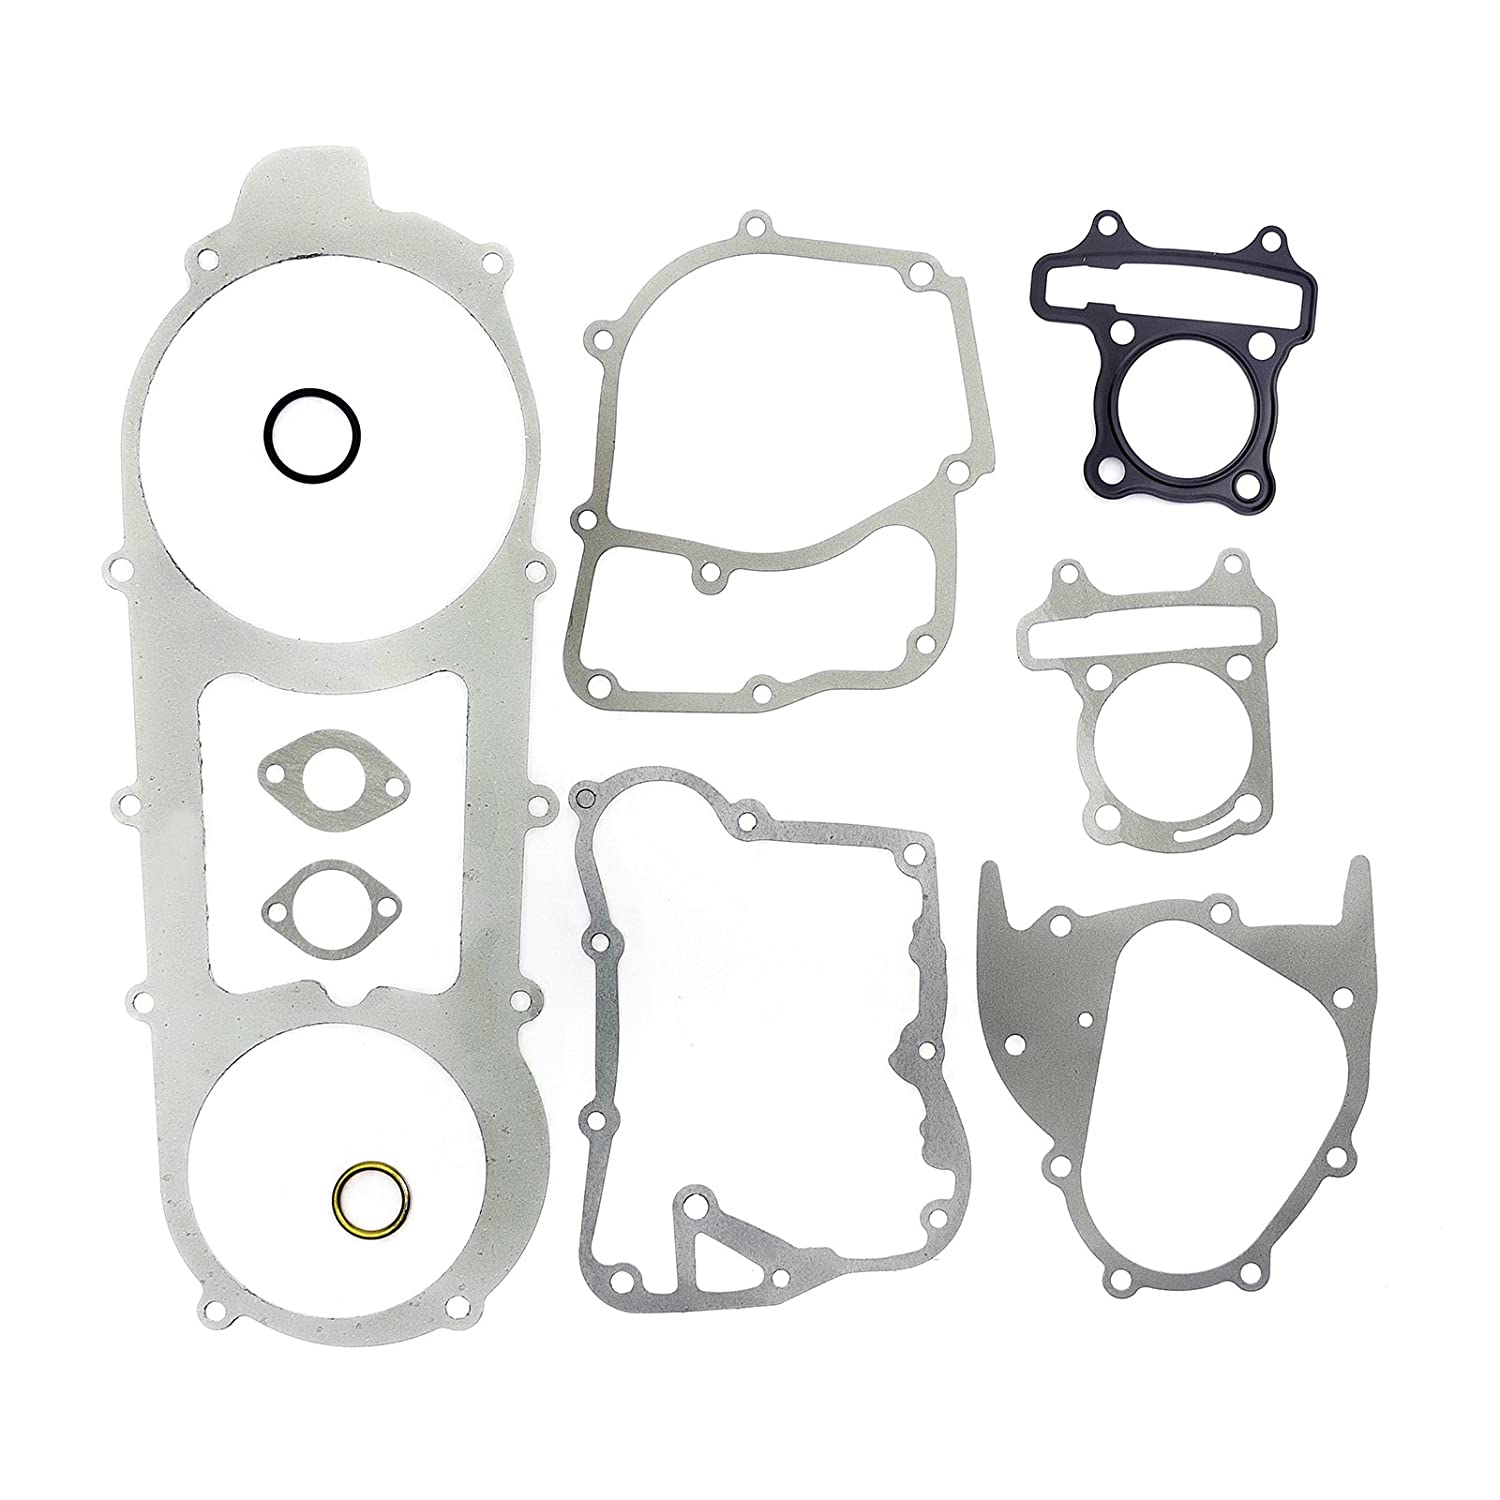 Long Engine Gasket Set For 125cc Baotian & Chinese Scooters Engine Number 152QMI PetrolScooter